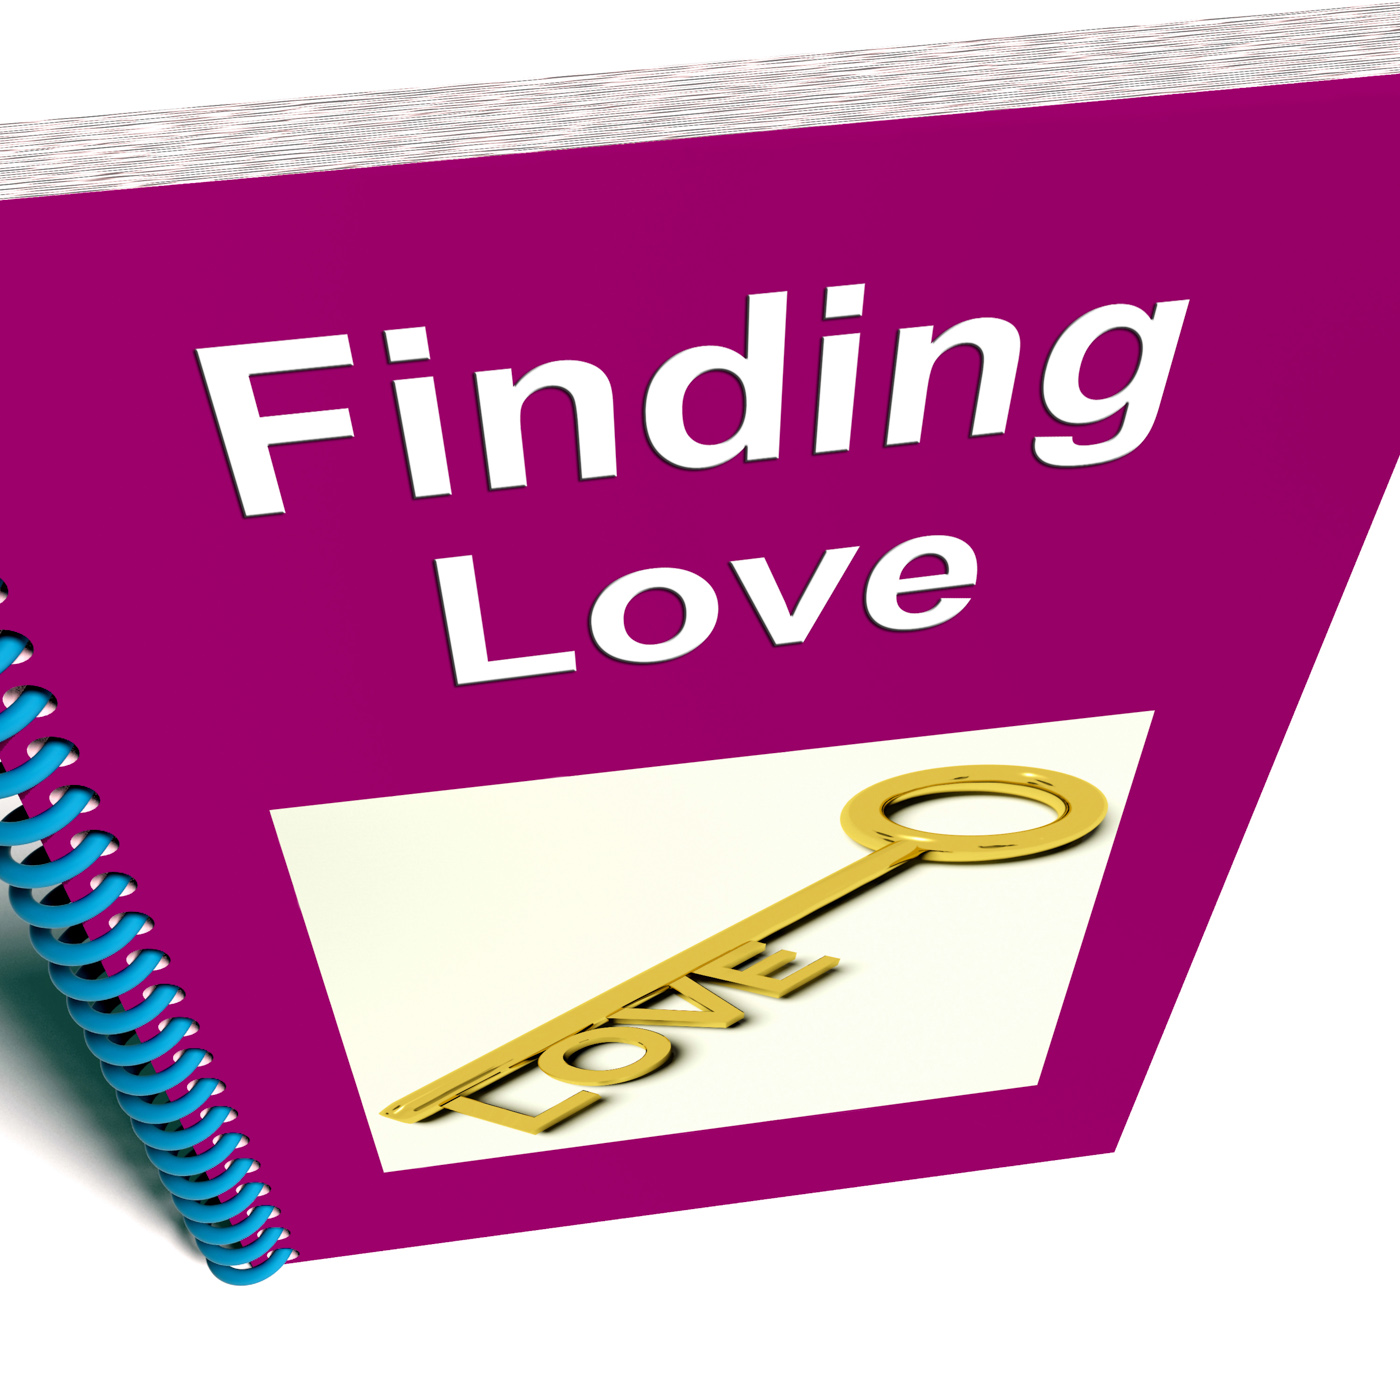 Finding love book shows relationship advice photo